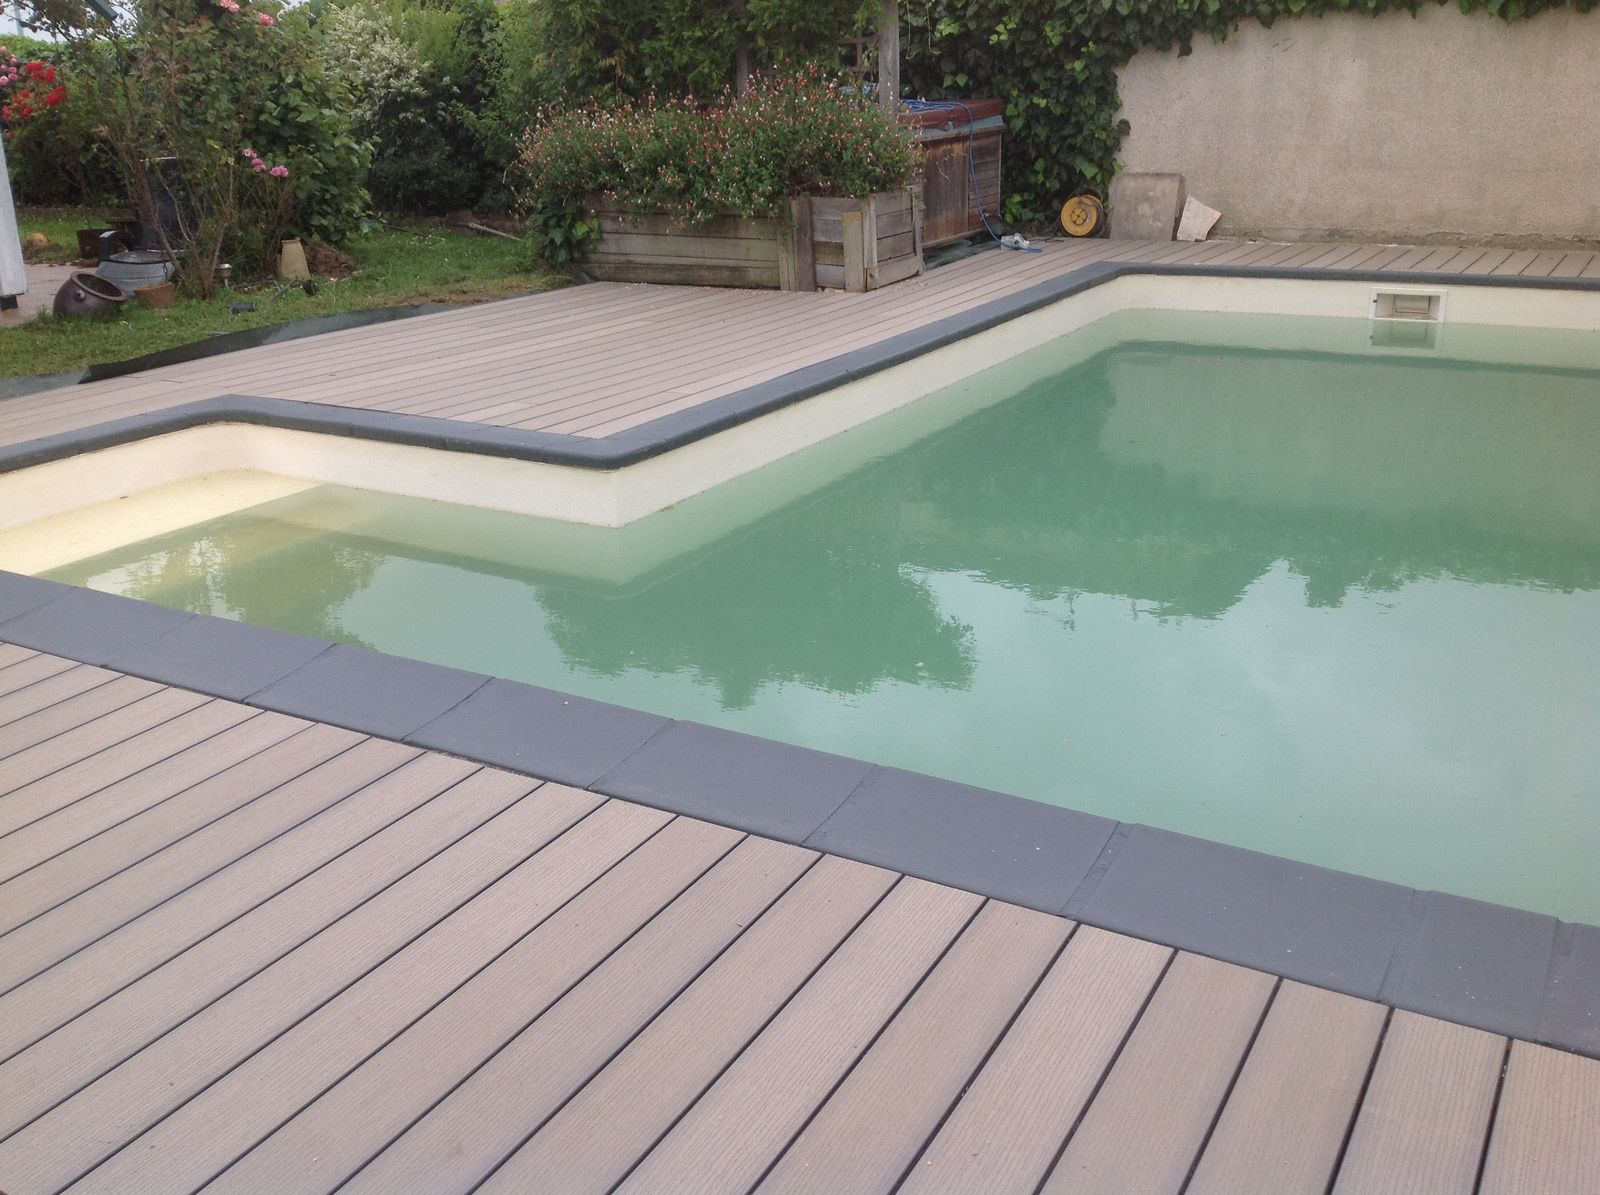 Terrasses composites quelques creations 2016 le blog for Terrasse piscine beton